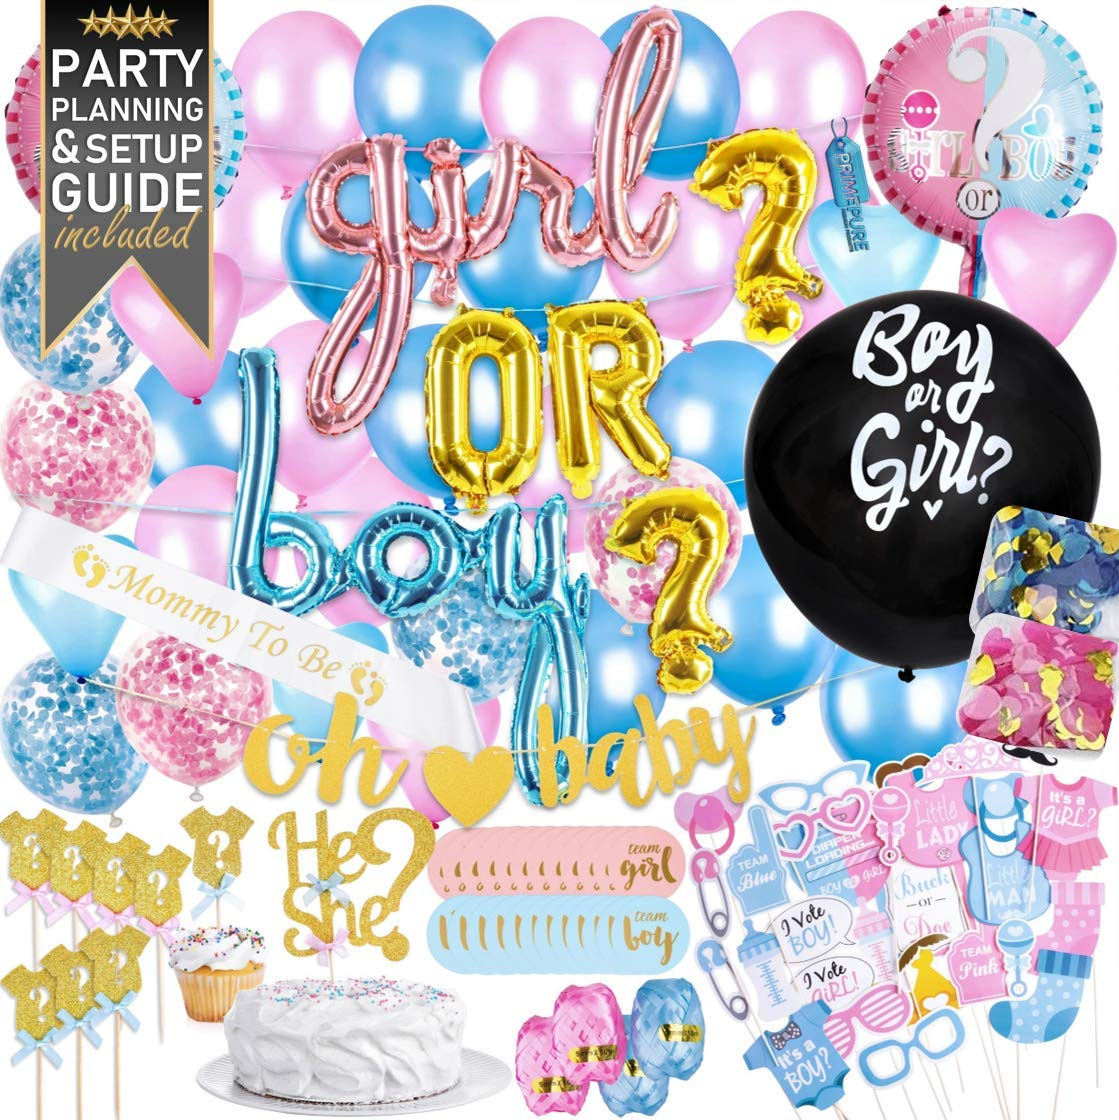 Baby Gender Reveal Party Supplies Decorations – 111 Piece Premium Kit Pink and Blue Balloons, 36 inch Gender Reveal Balloon, Boy or Girl Banner Replacement for Smoke Bombs Confetti Cannon